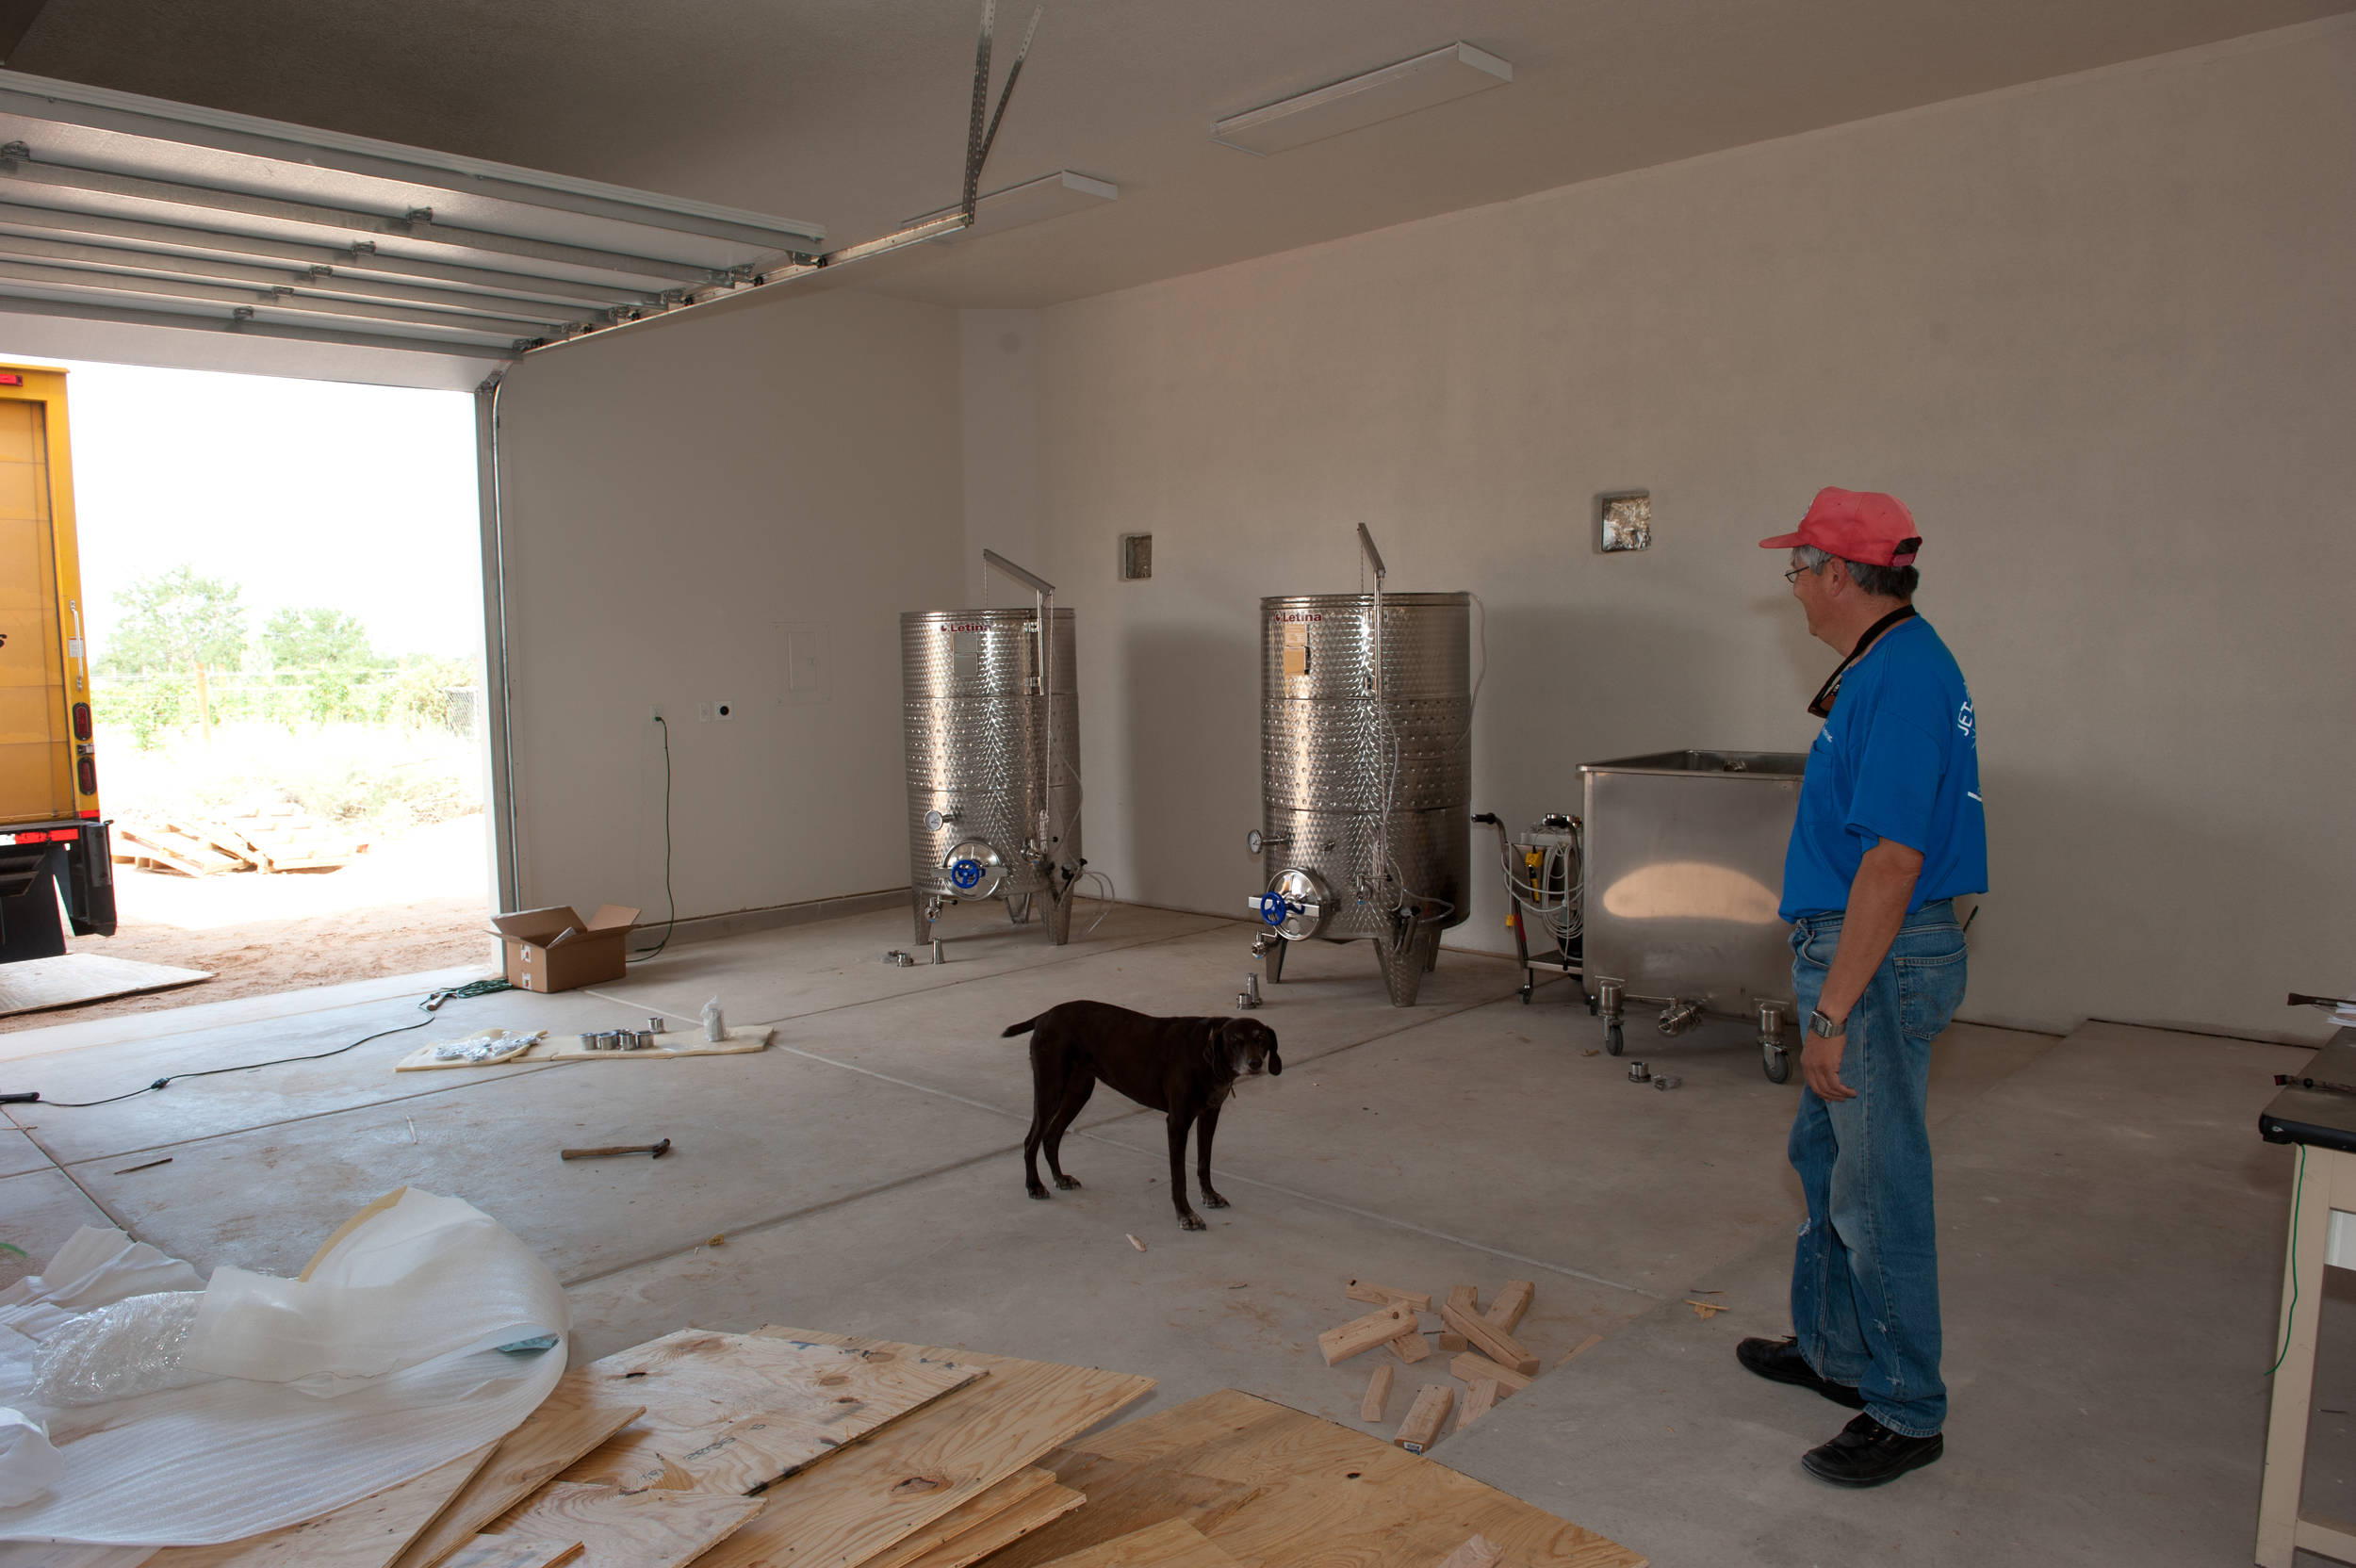 Two 250s and a Zena dog, ready to make wine.